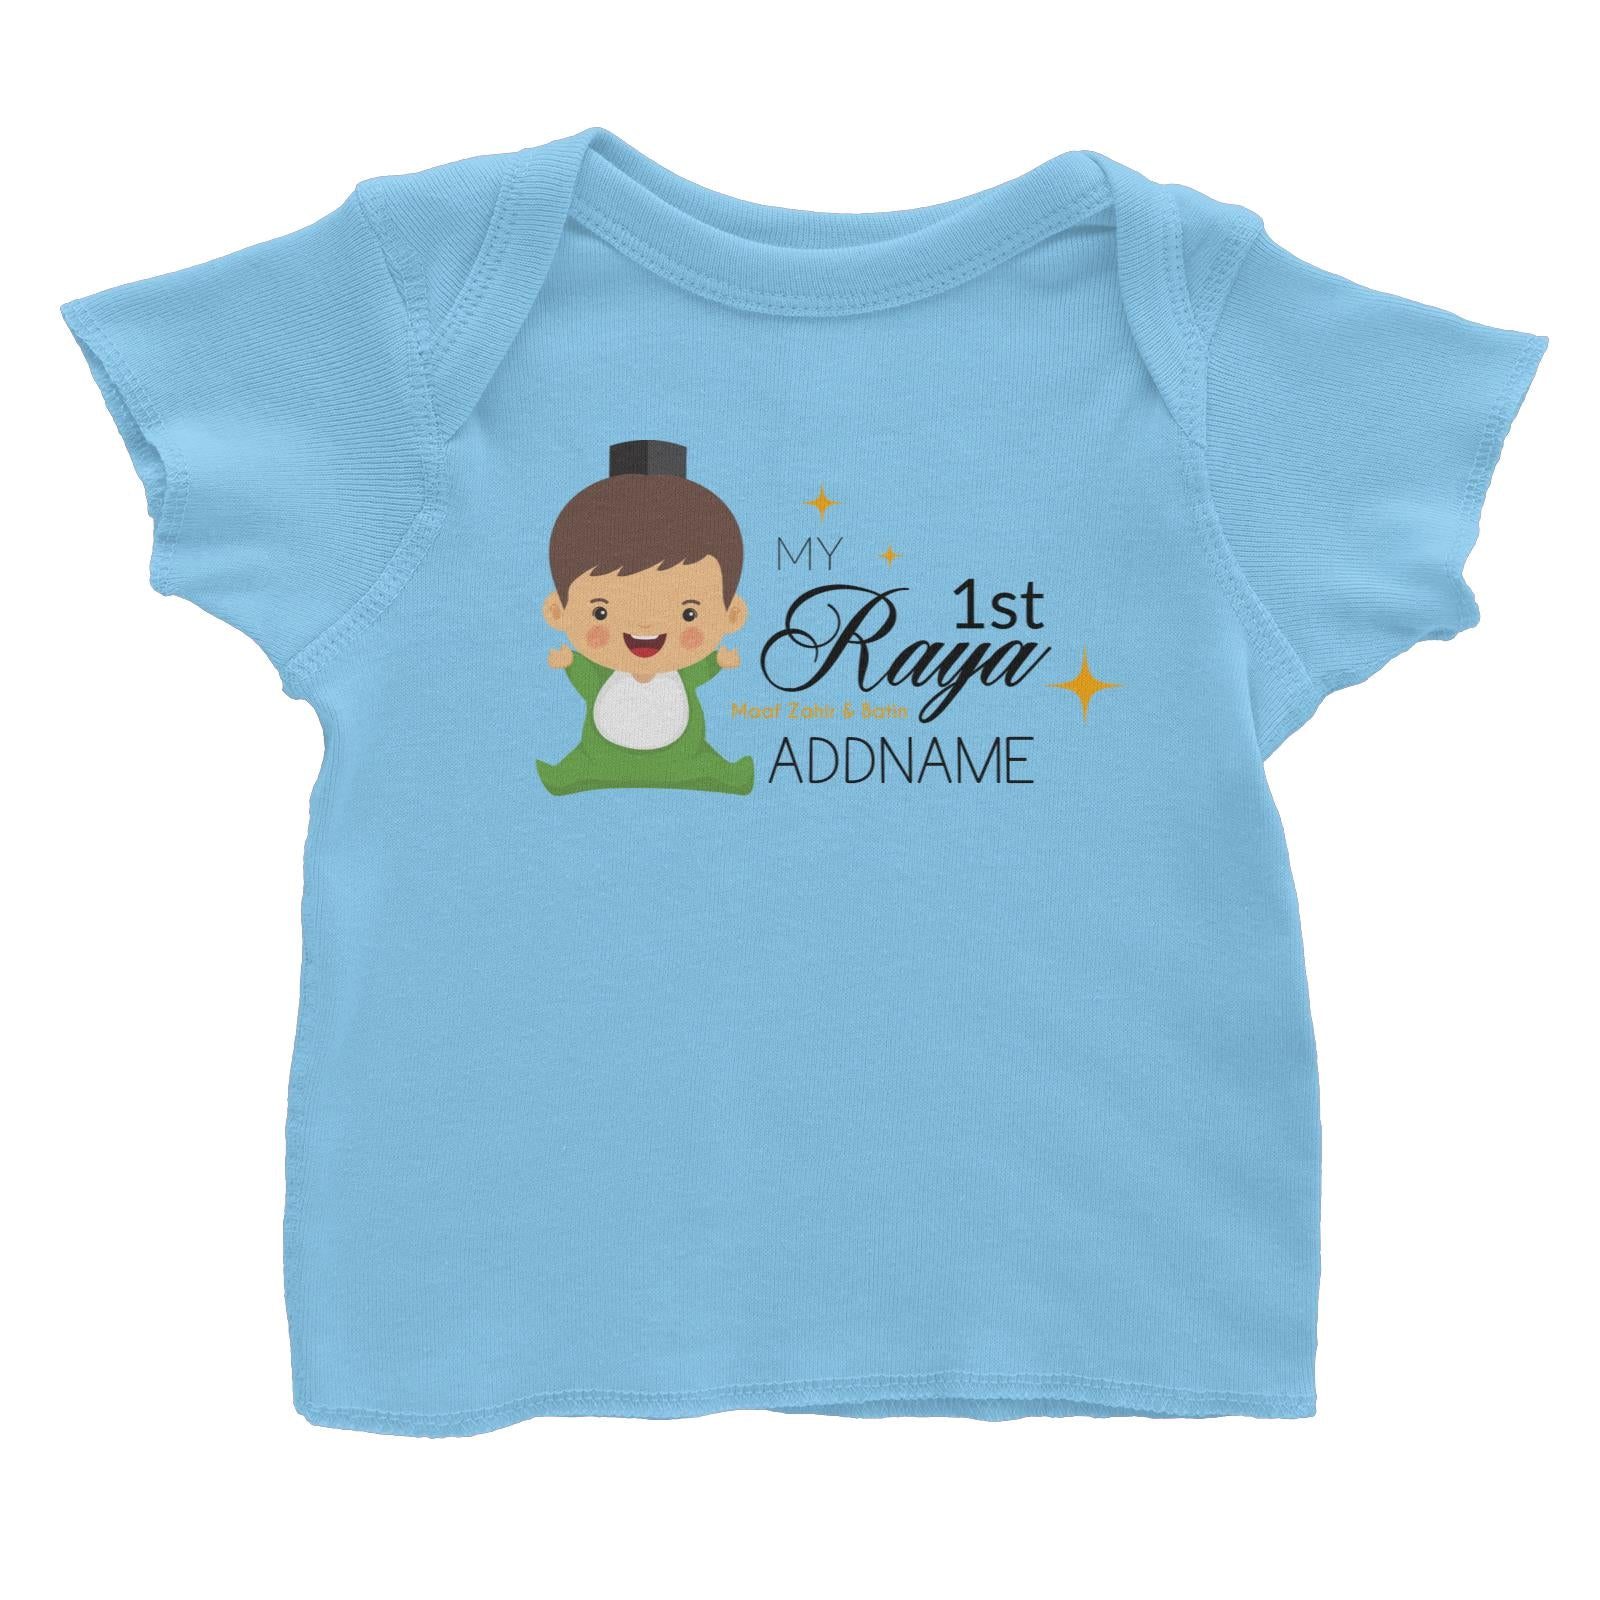 My 1st Raya Baby Boy Baby T-Shirt  Personalizable Designs Sweet Character